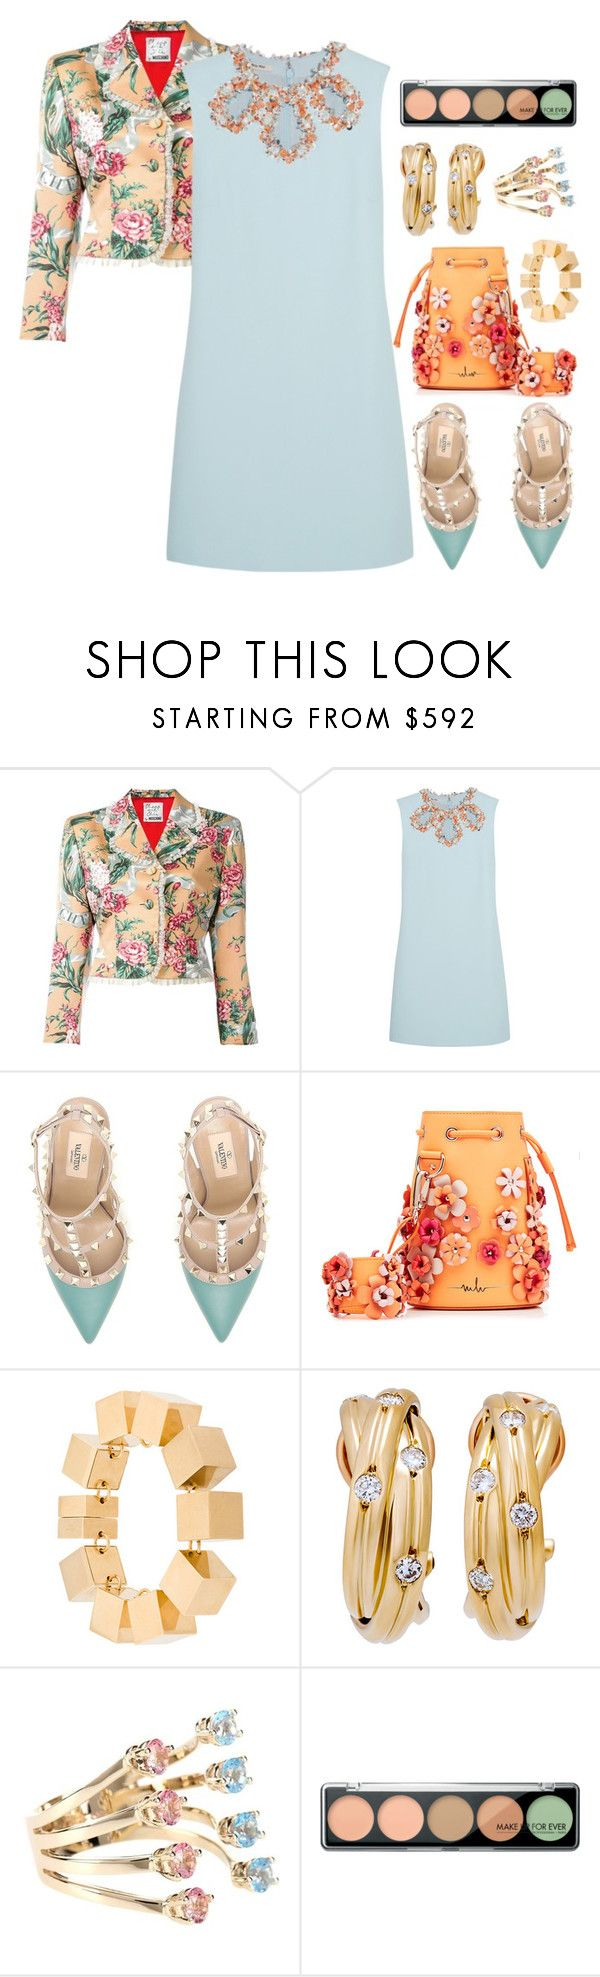 """""""Pastel Date Style"""" by ladygroovenyc ❤ liked on Polyvore featuring Moschino, Miu Miu, Valentino, Marina Hoermanseder, CÉLINE, Delfina Delettrez, MAKE UP FOR EVER, DateNight and pastel"""